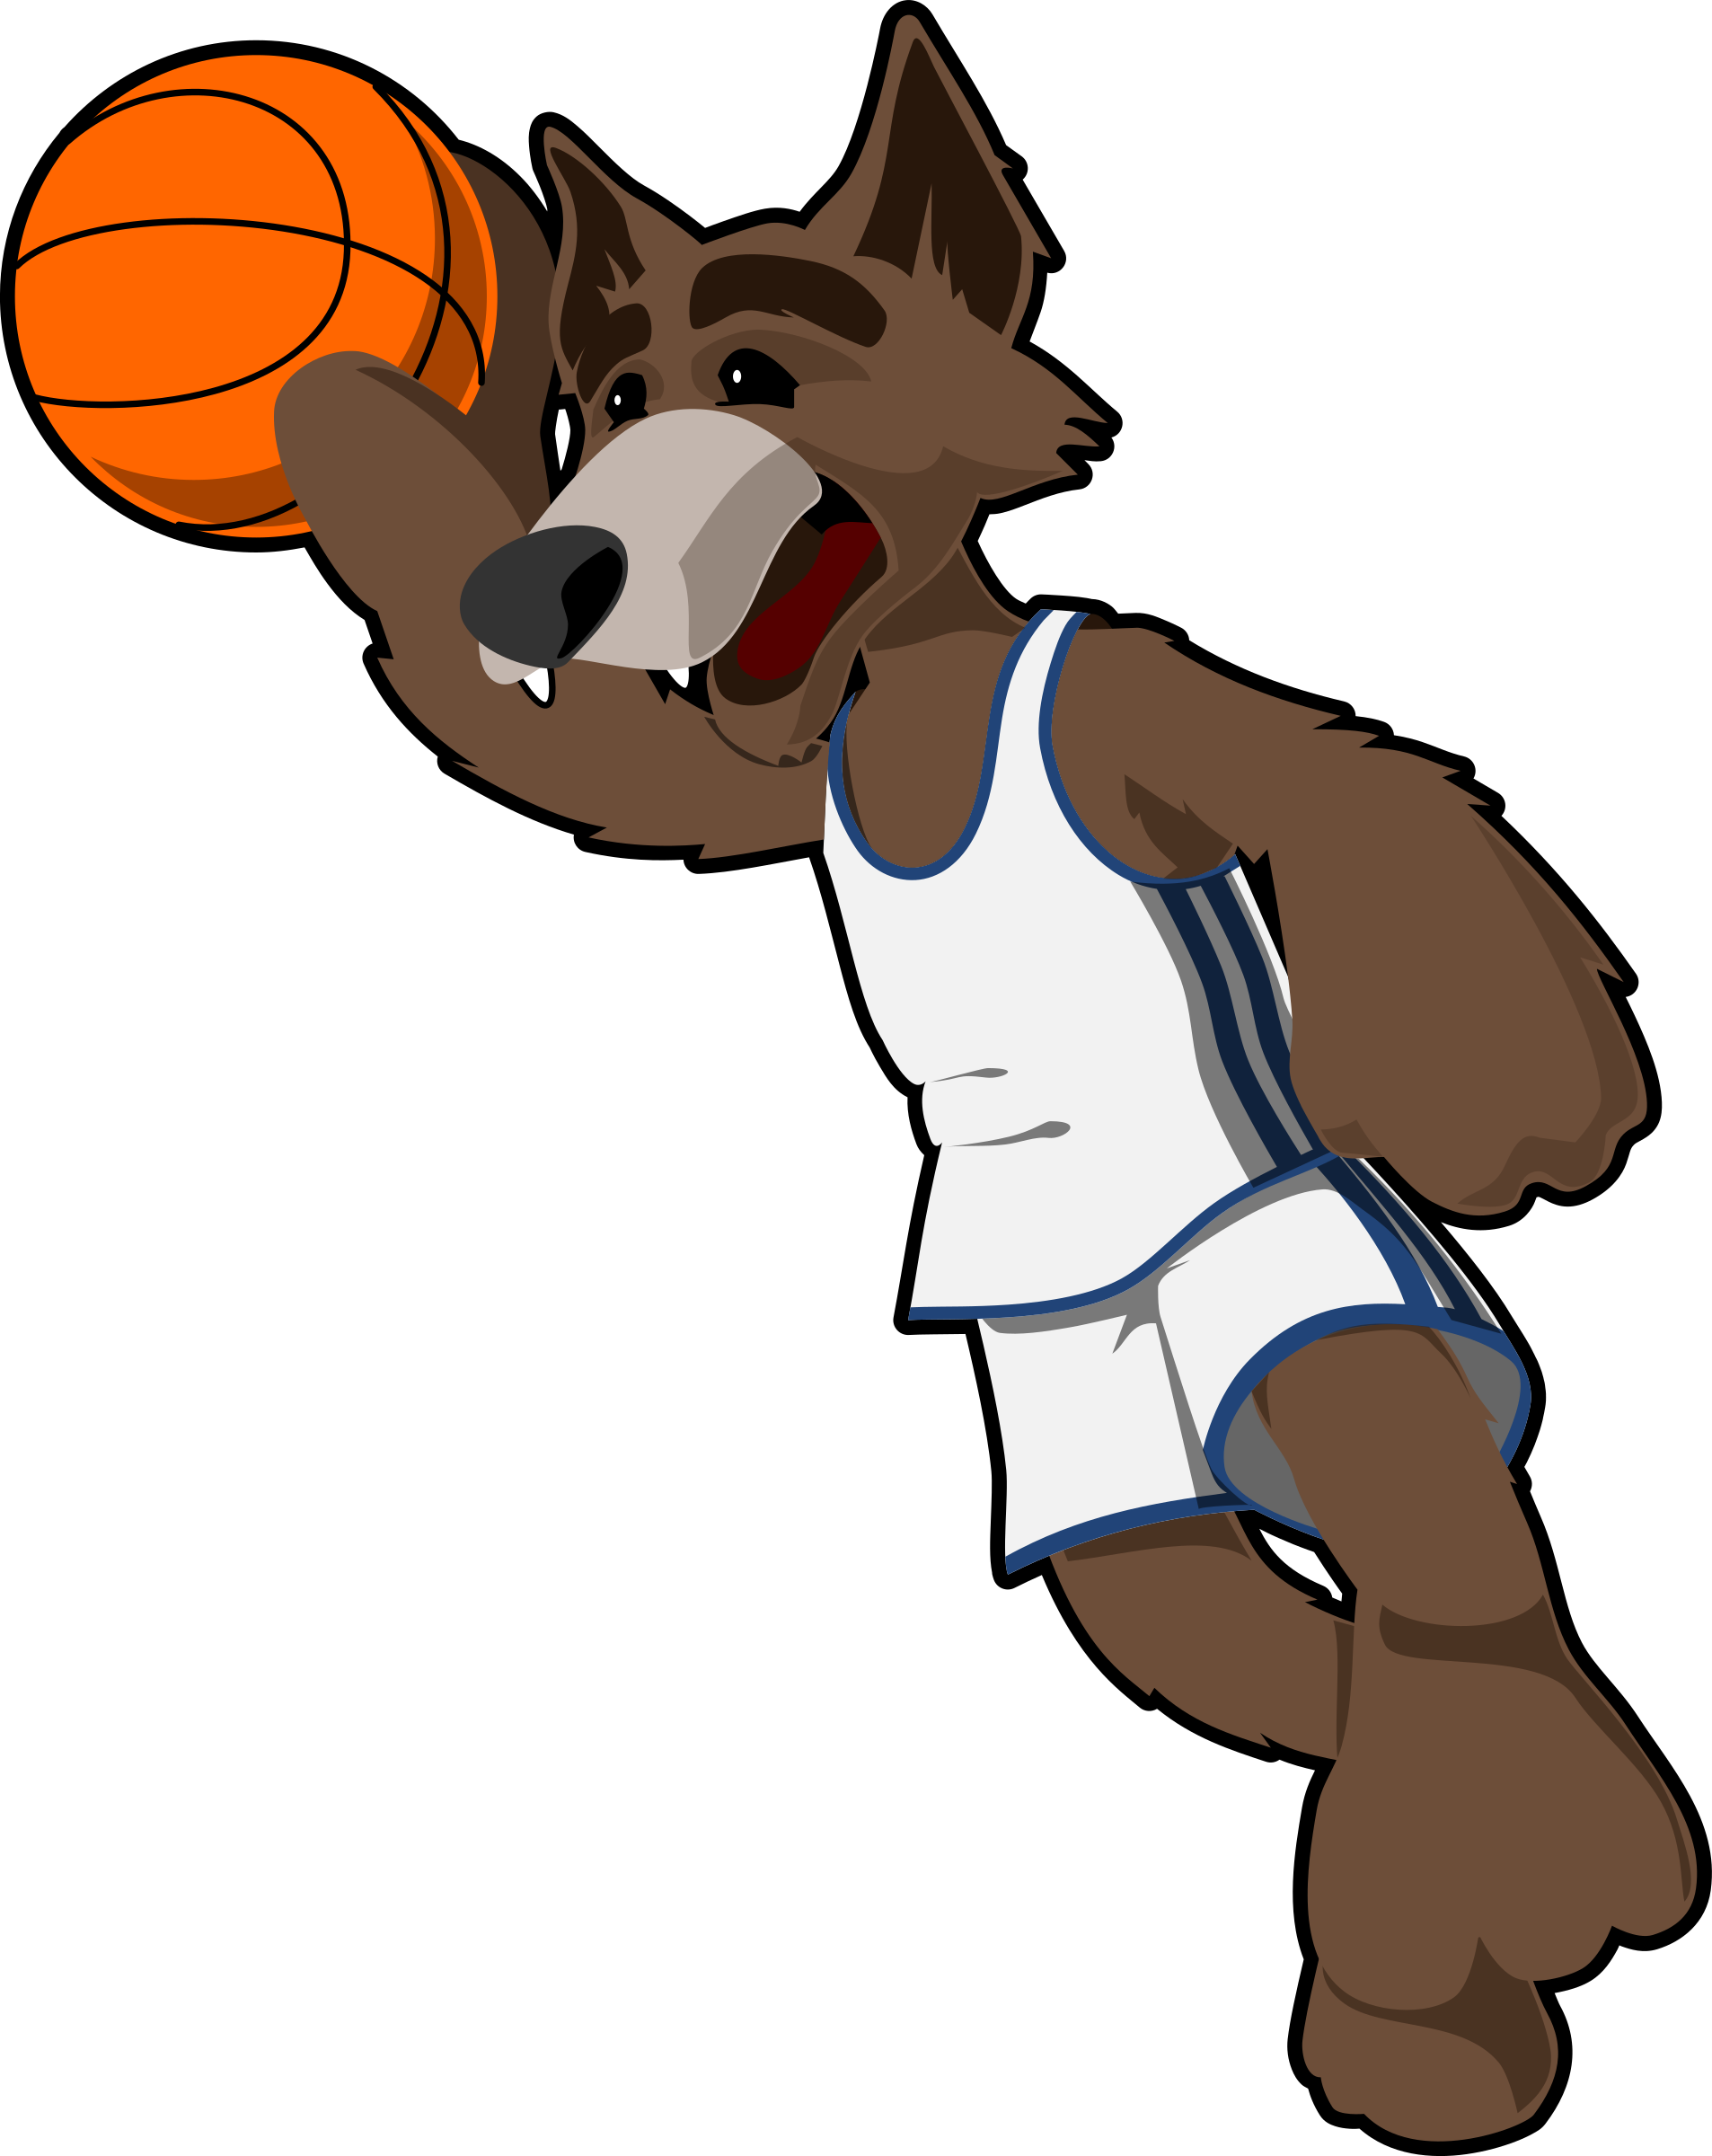 Animalm playing basketball clipart picture transparent library Clipart - basketball wolf picture transparent library